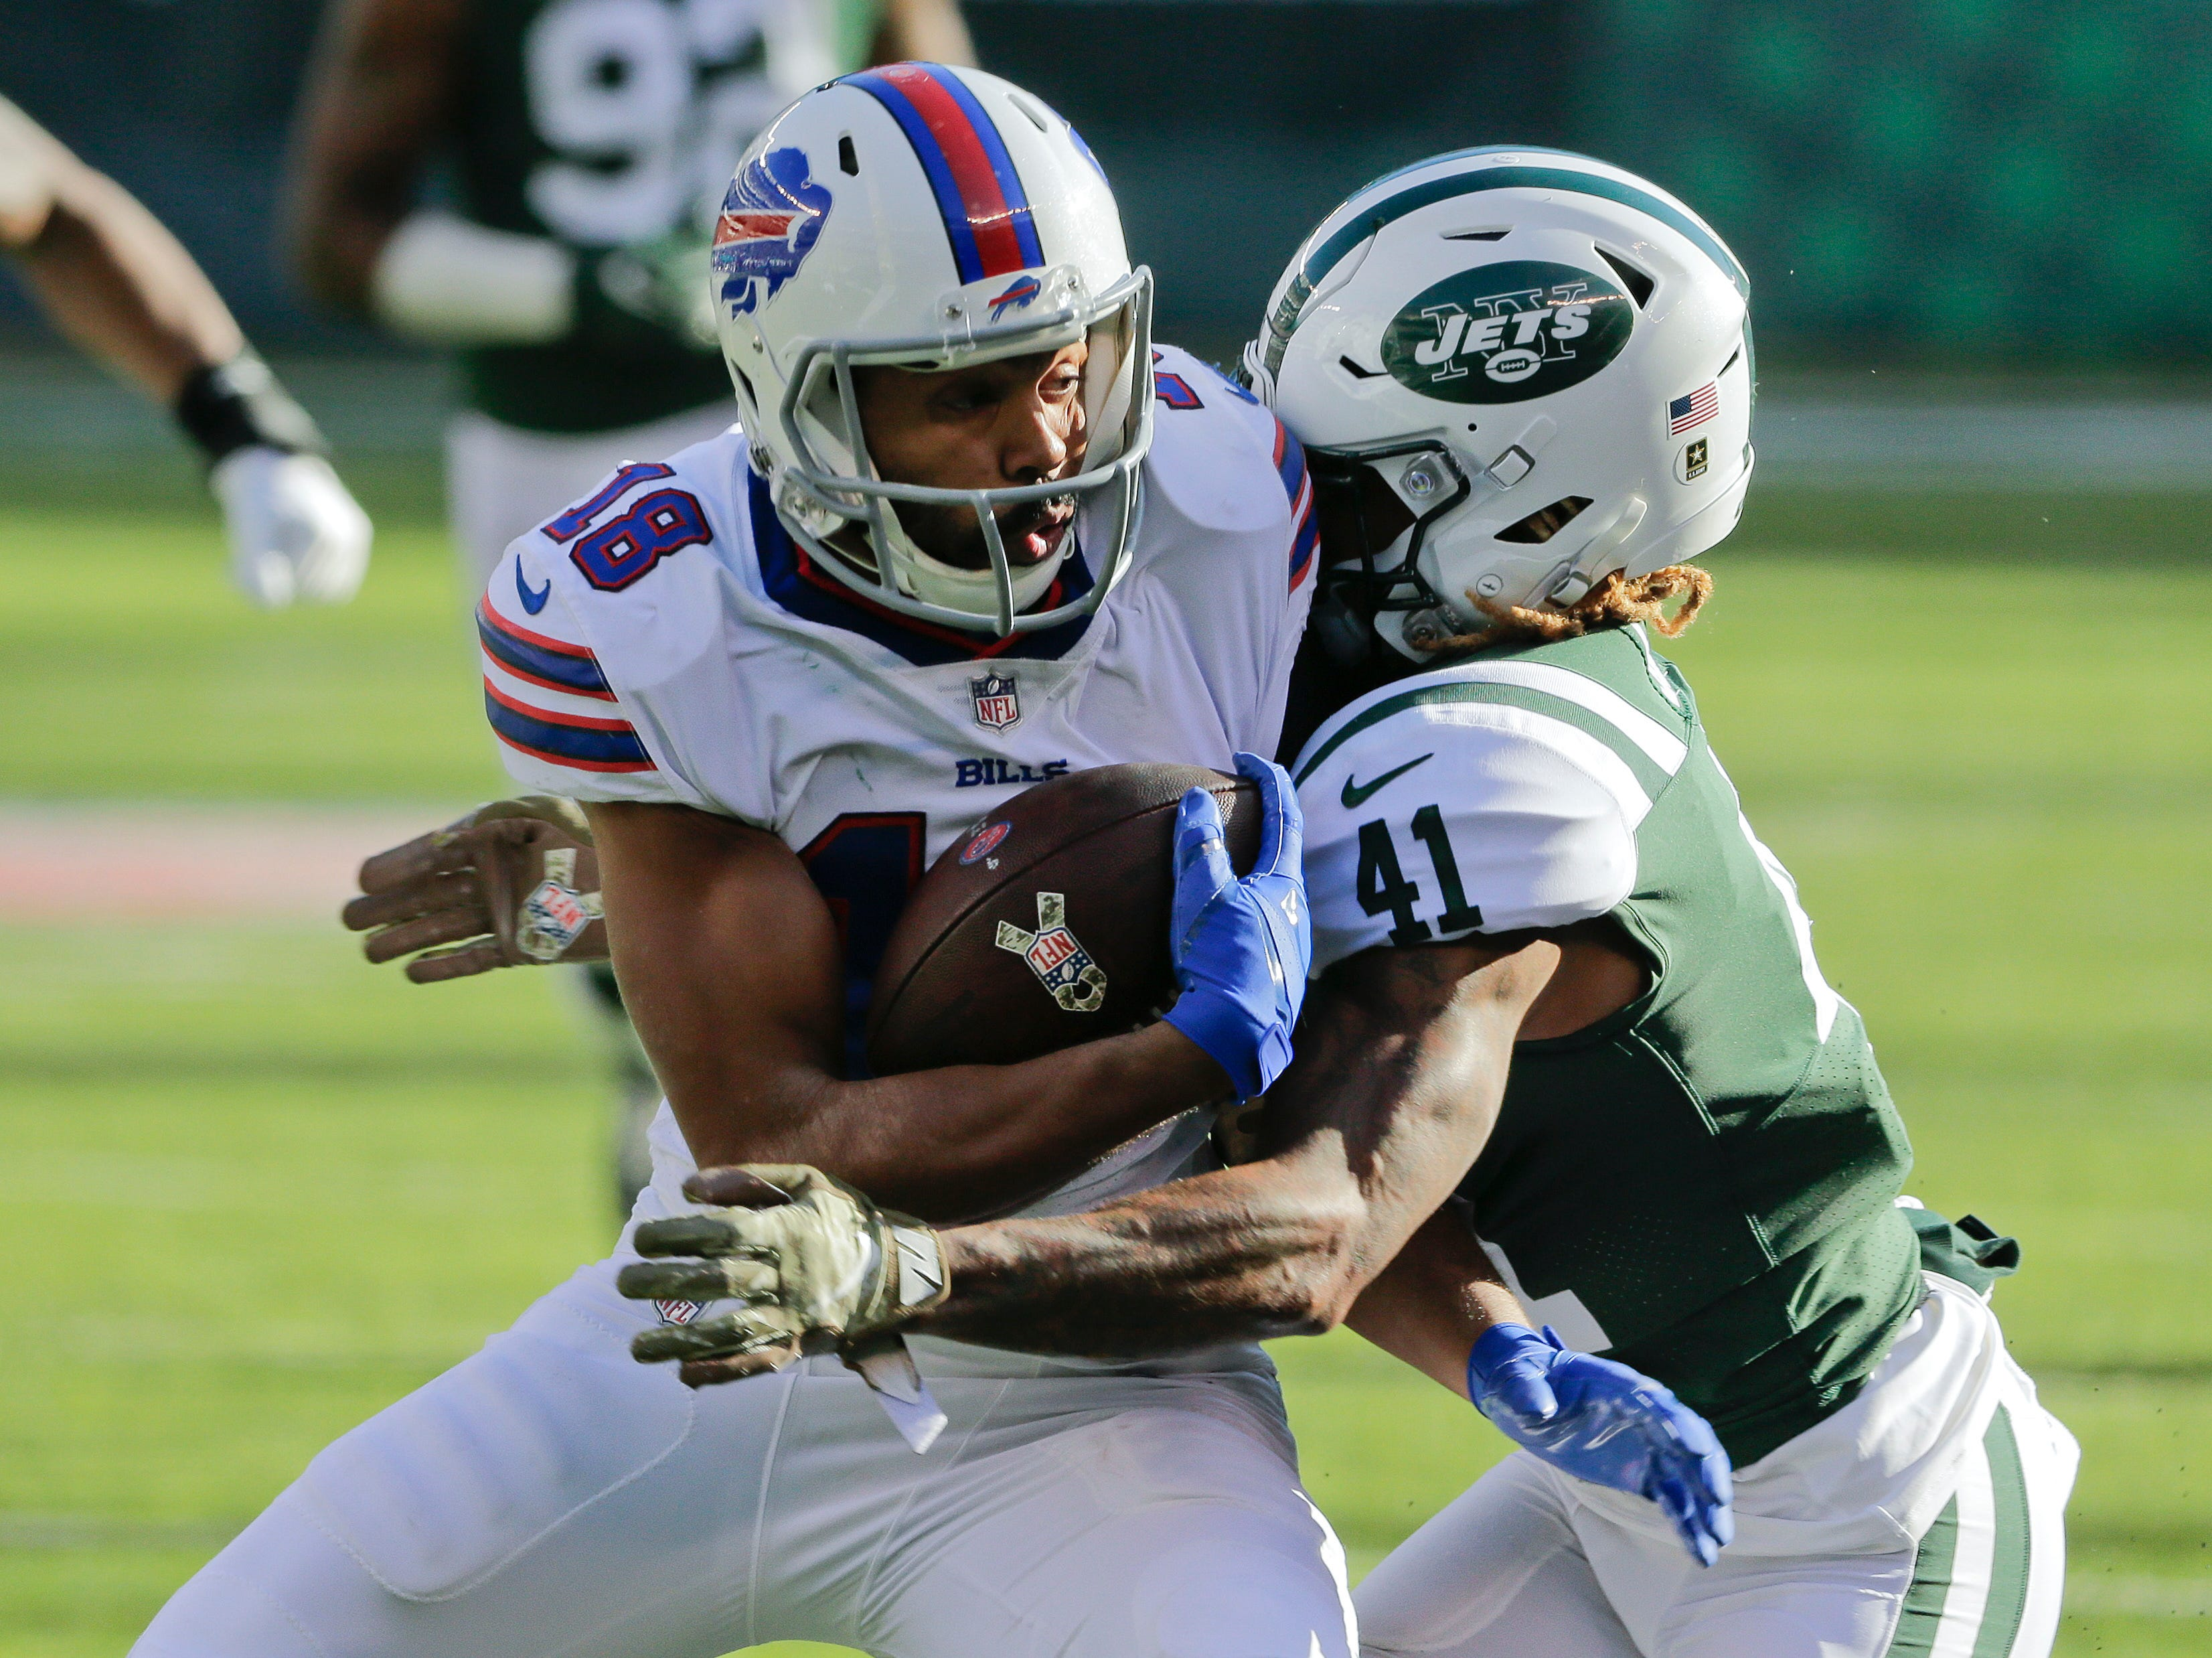 Buffalo Bills wide receiver Andre Holmes (18) takes a hit from New York Jets cornerback Buster Skrine (41) during the second quarter of an NFL football game, Sunday, Nov. 11, 2018, in East Rutherford, N.J. (AP Photo/Seth Wenig)